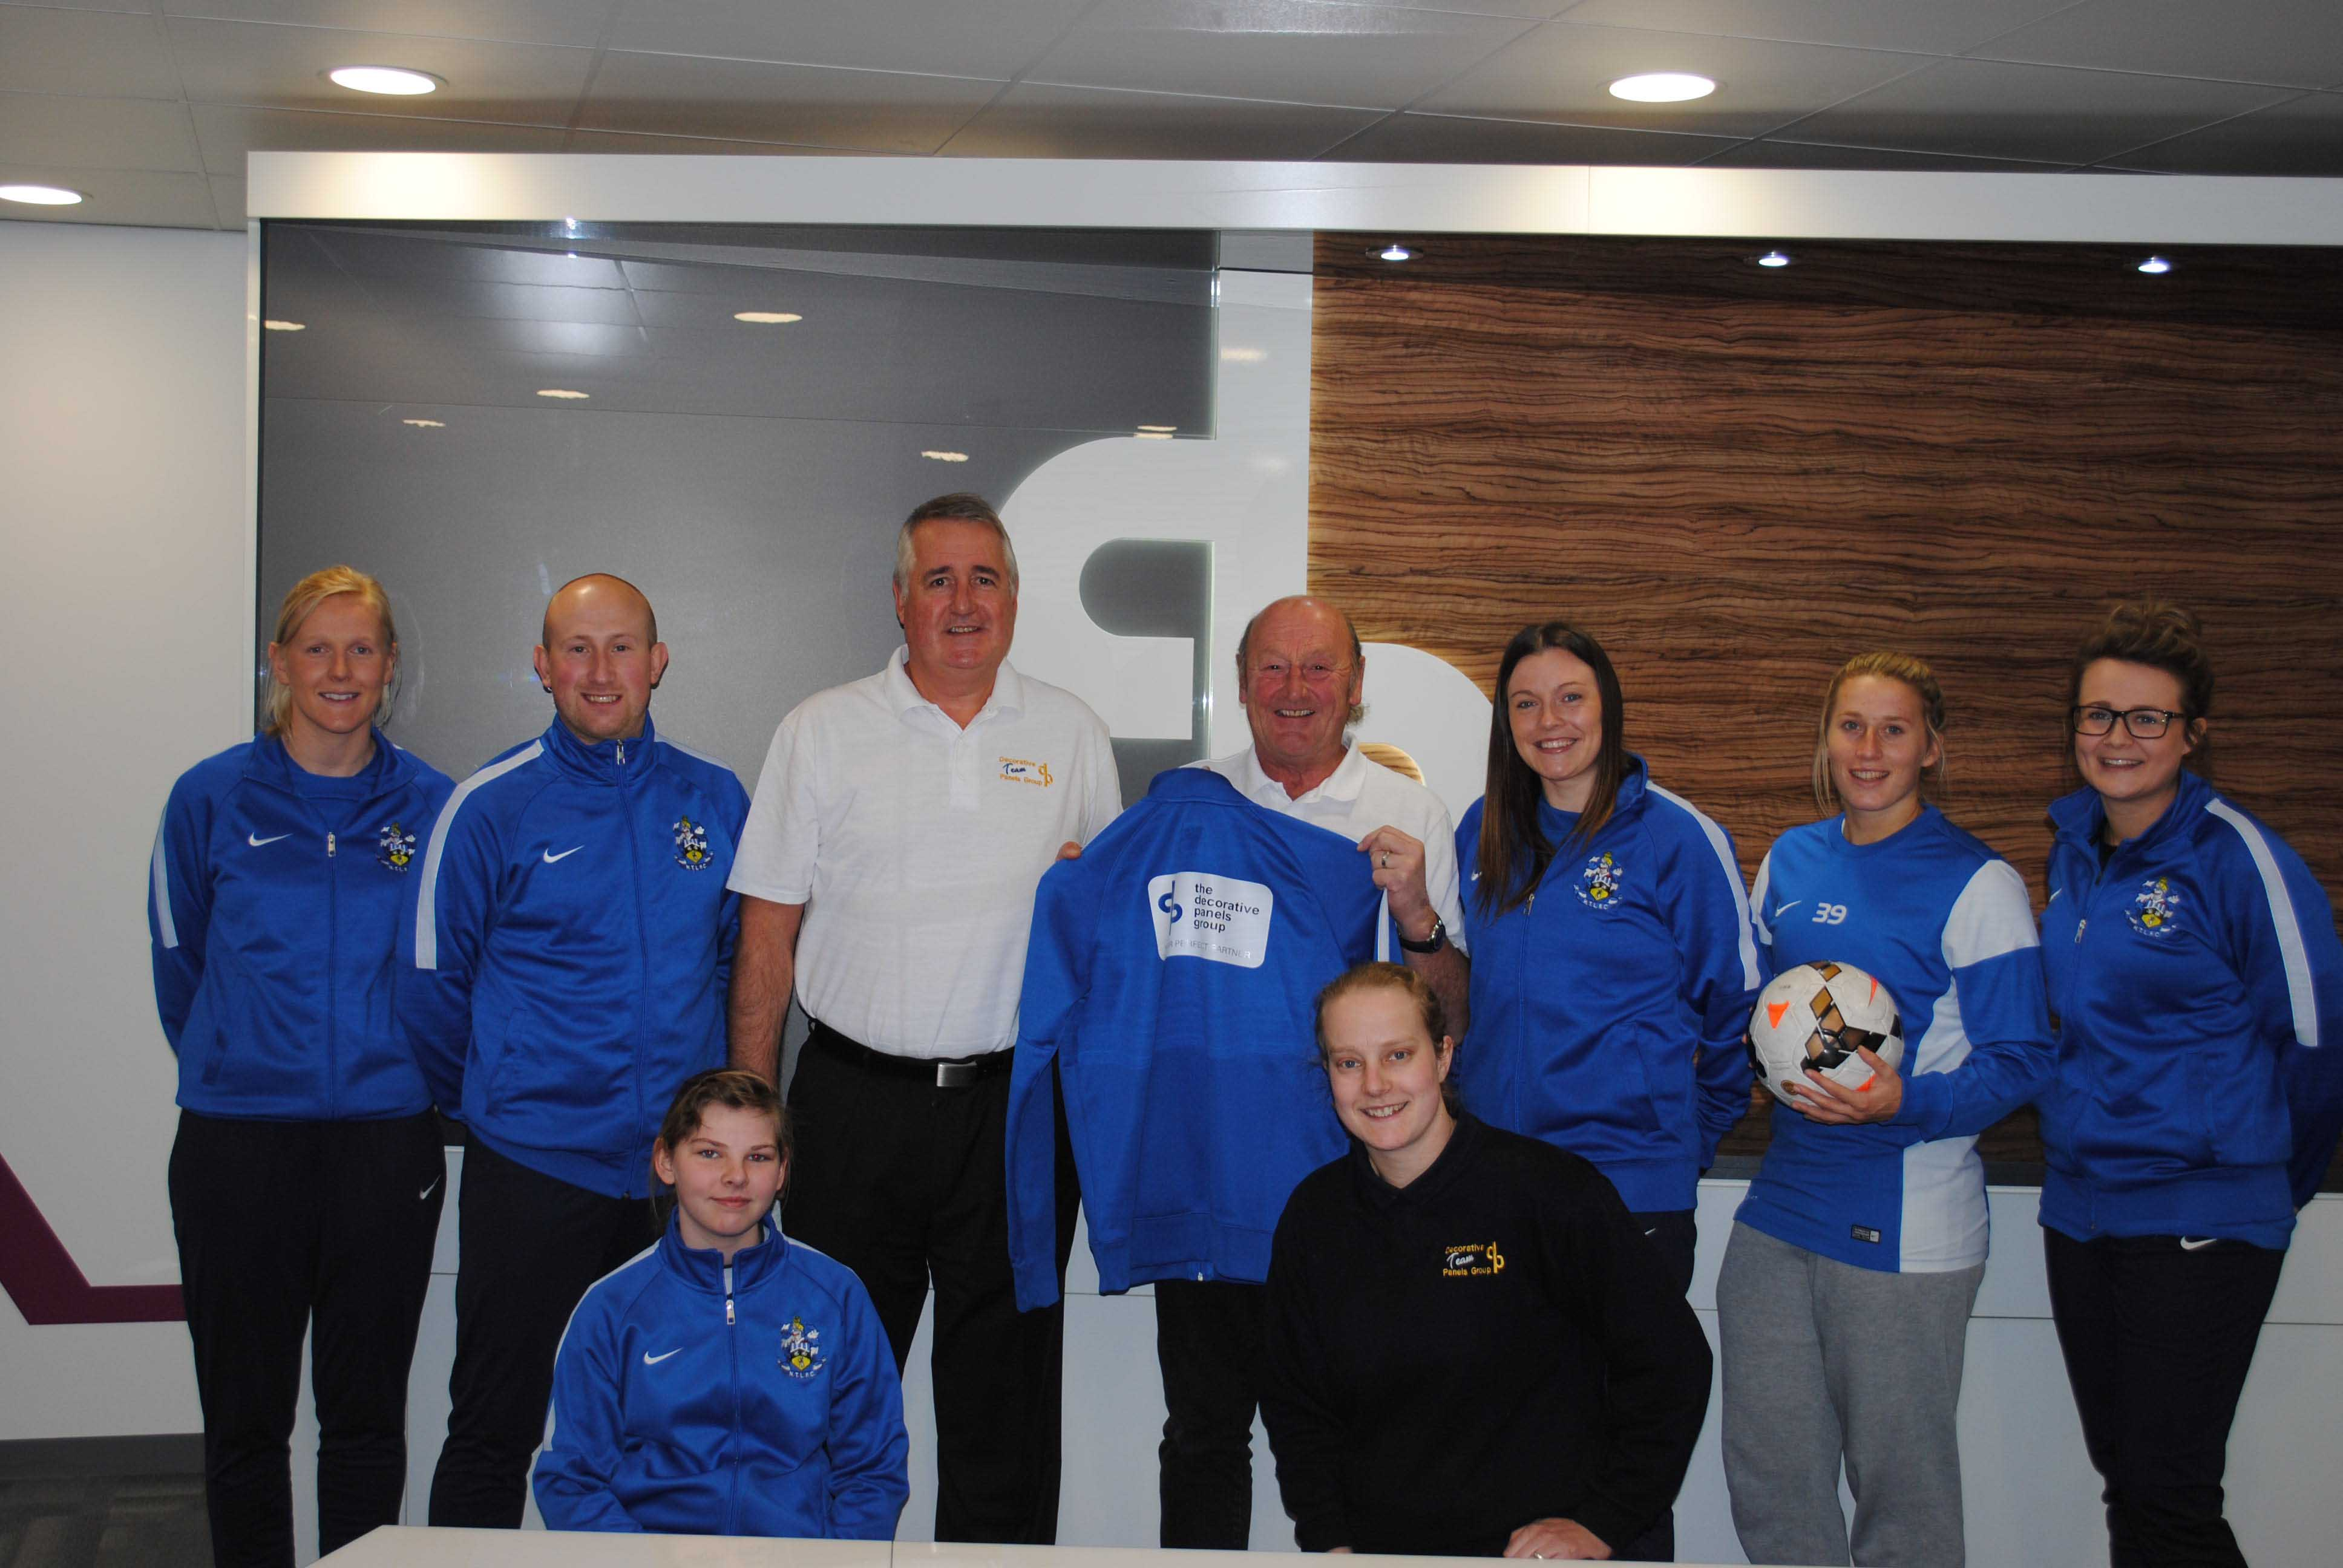 dp are now proud sponsors of Huddersfield Town Ladies FC